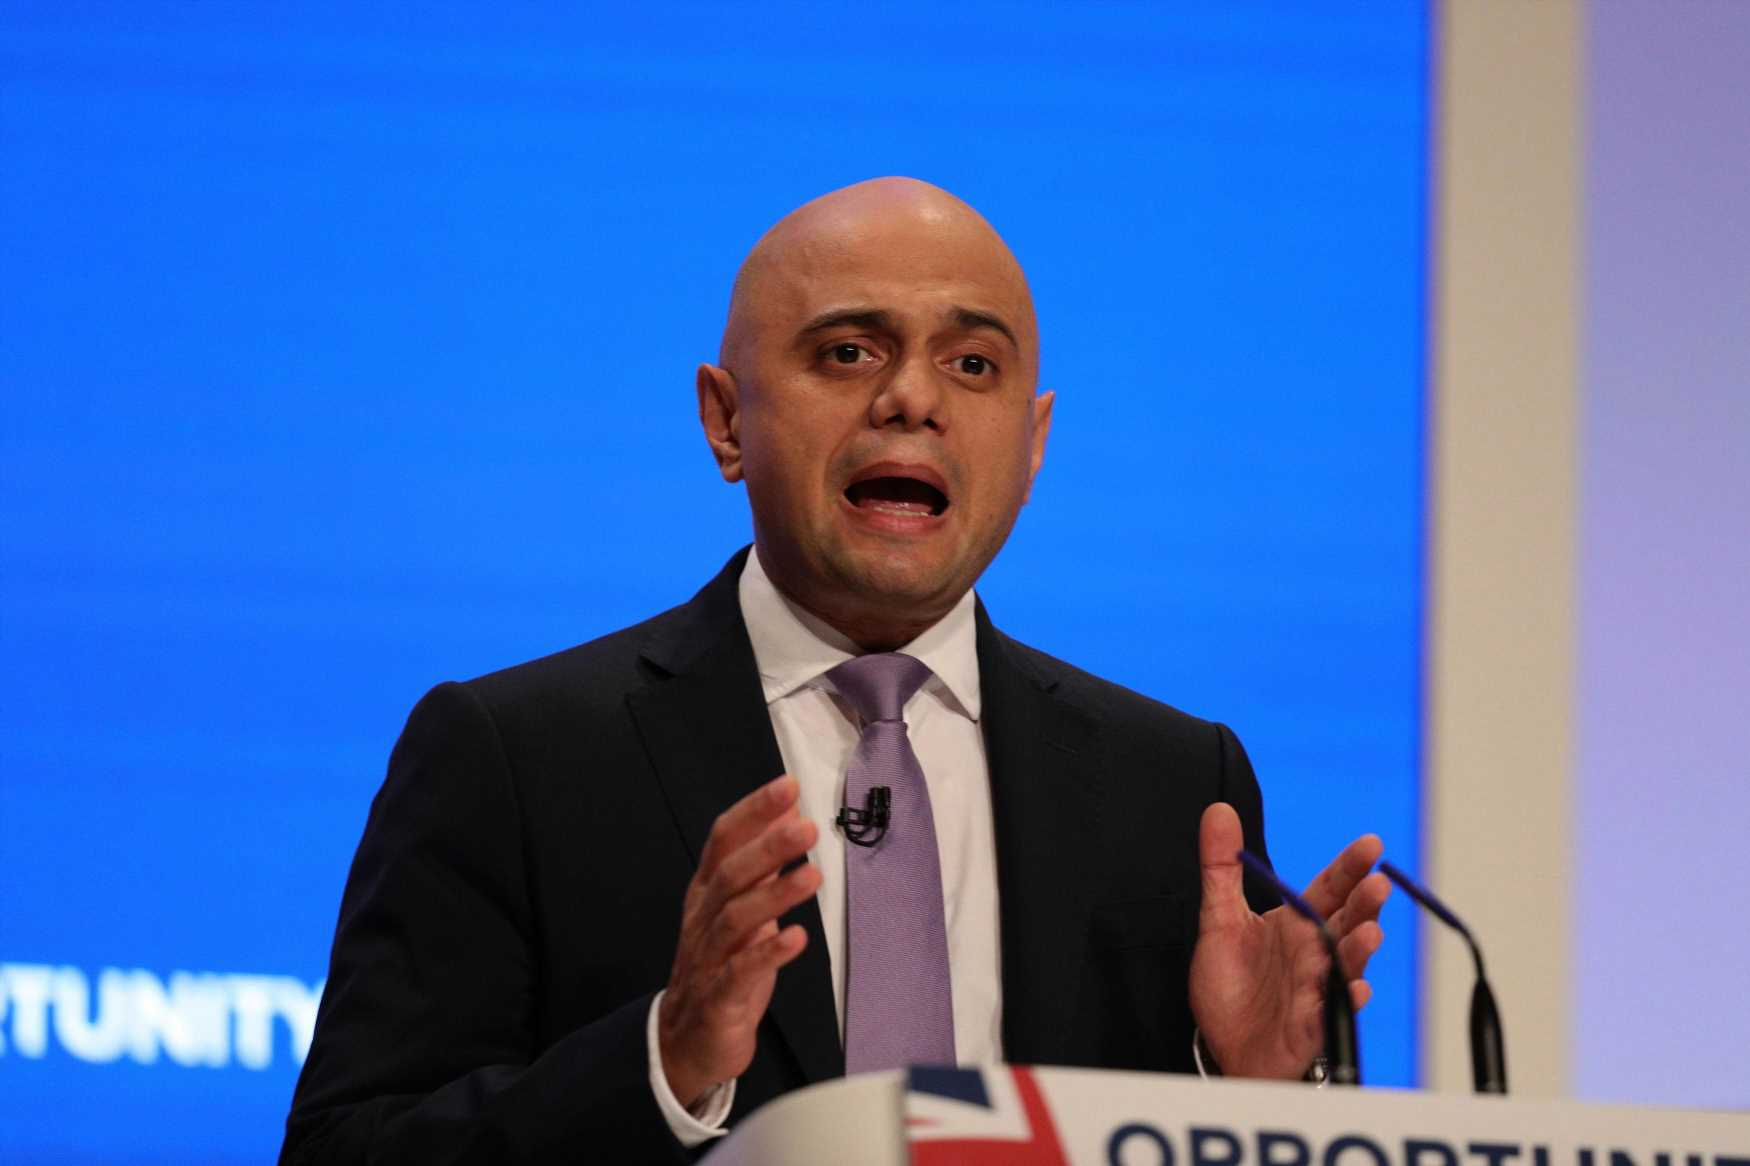 Will Sajid Javid be running for prime minister?